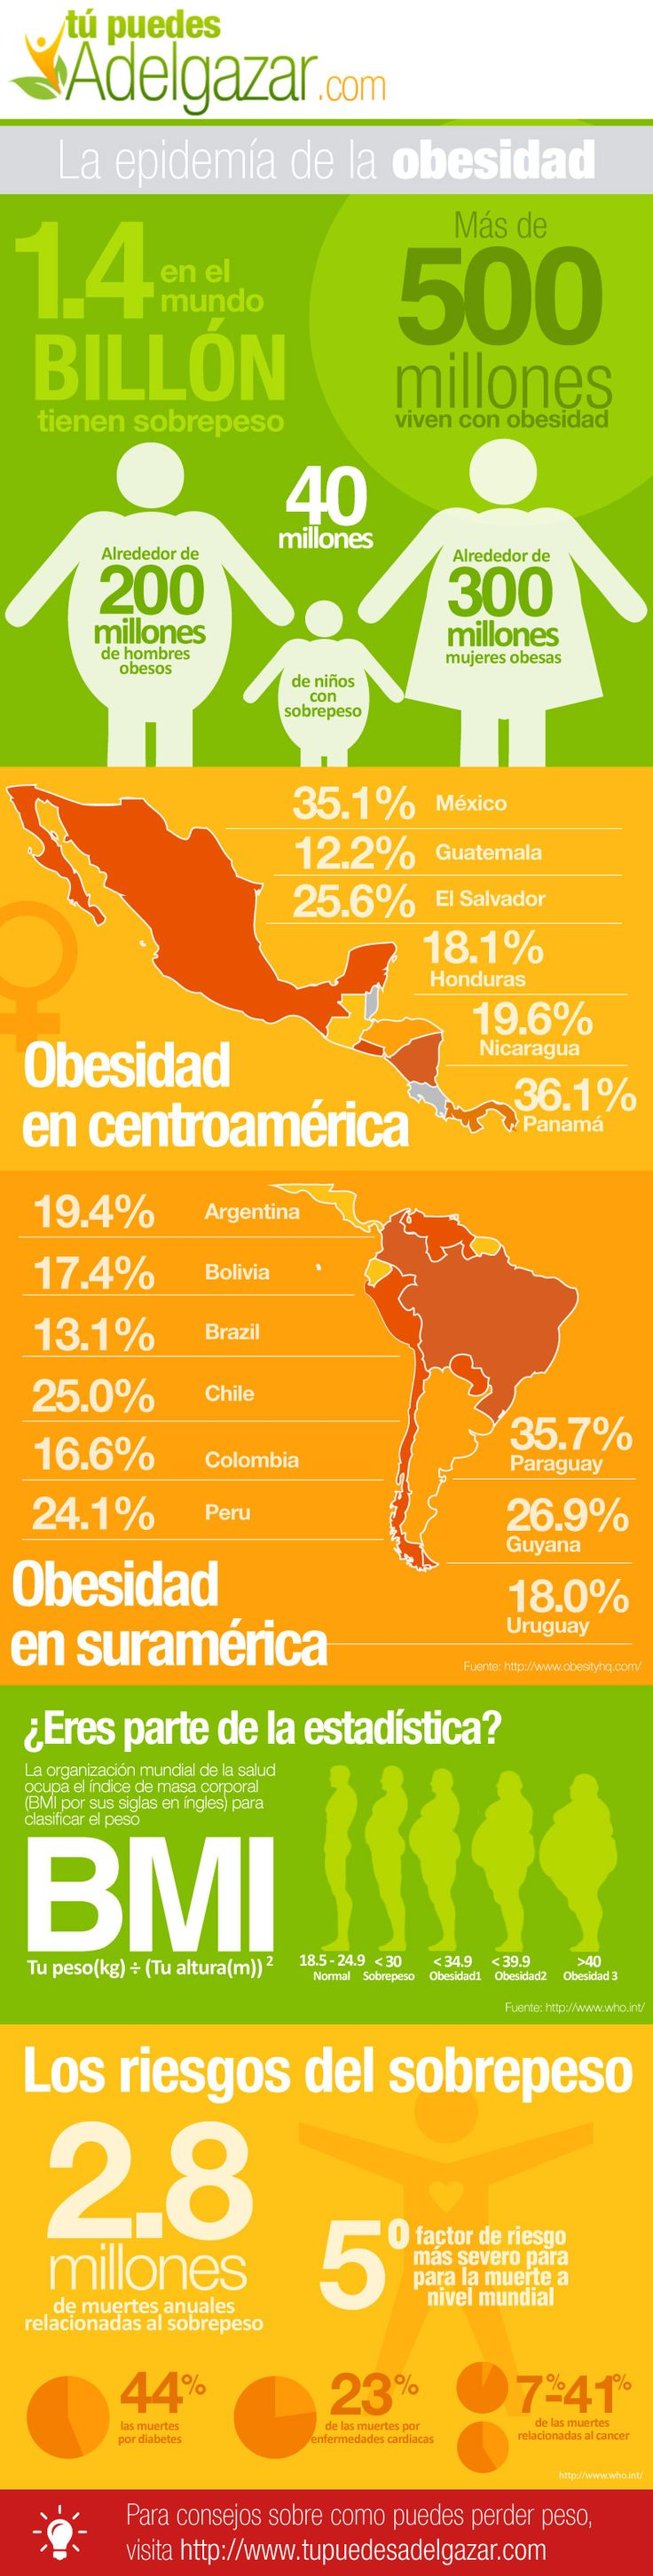 Obesity epidemics | Visit our new infographic gallery at visualoop.com/